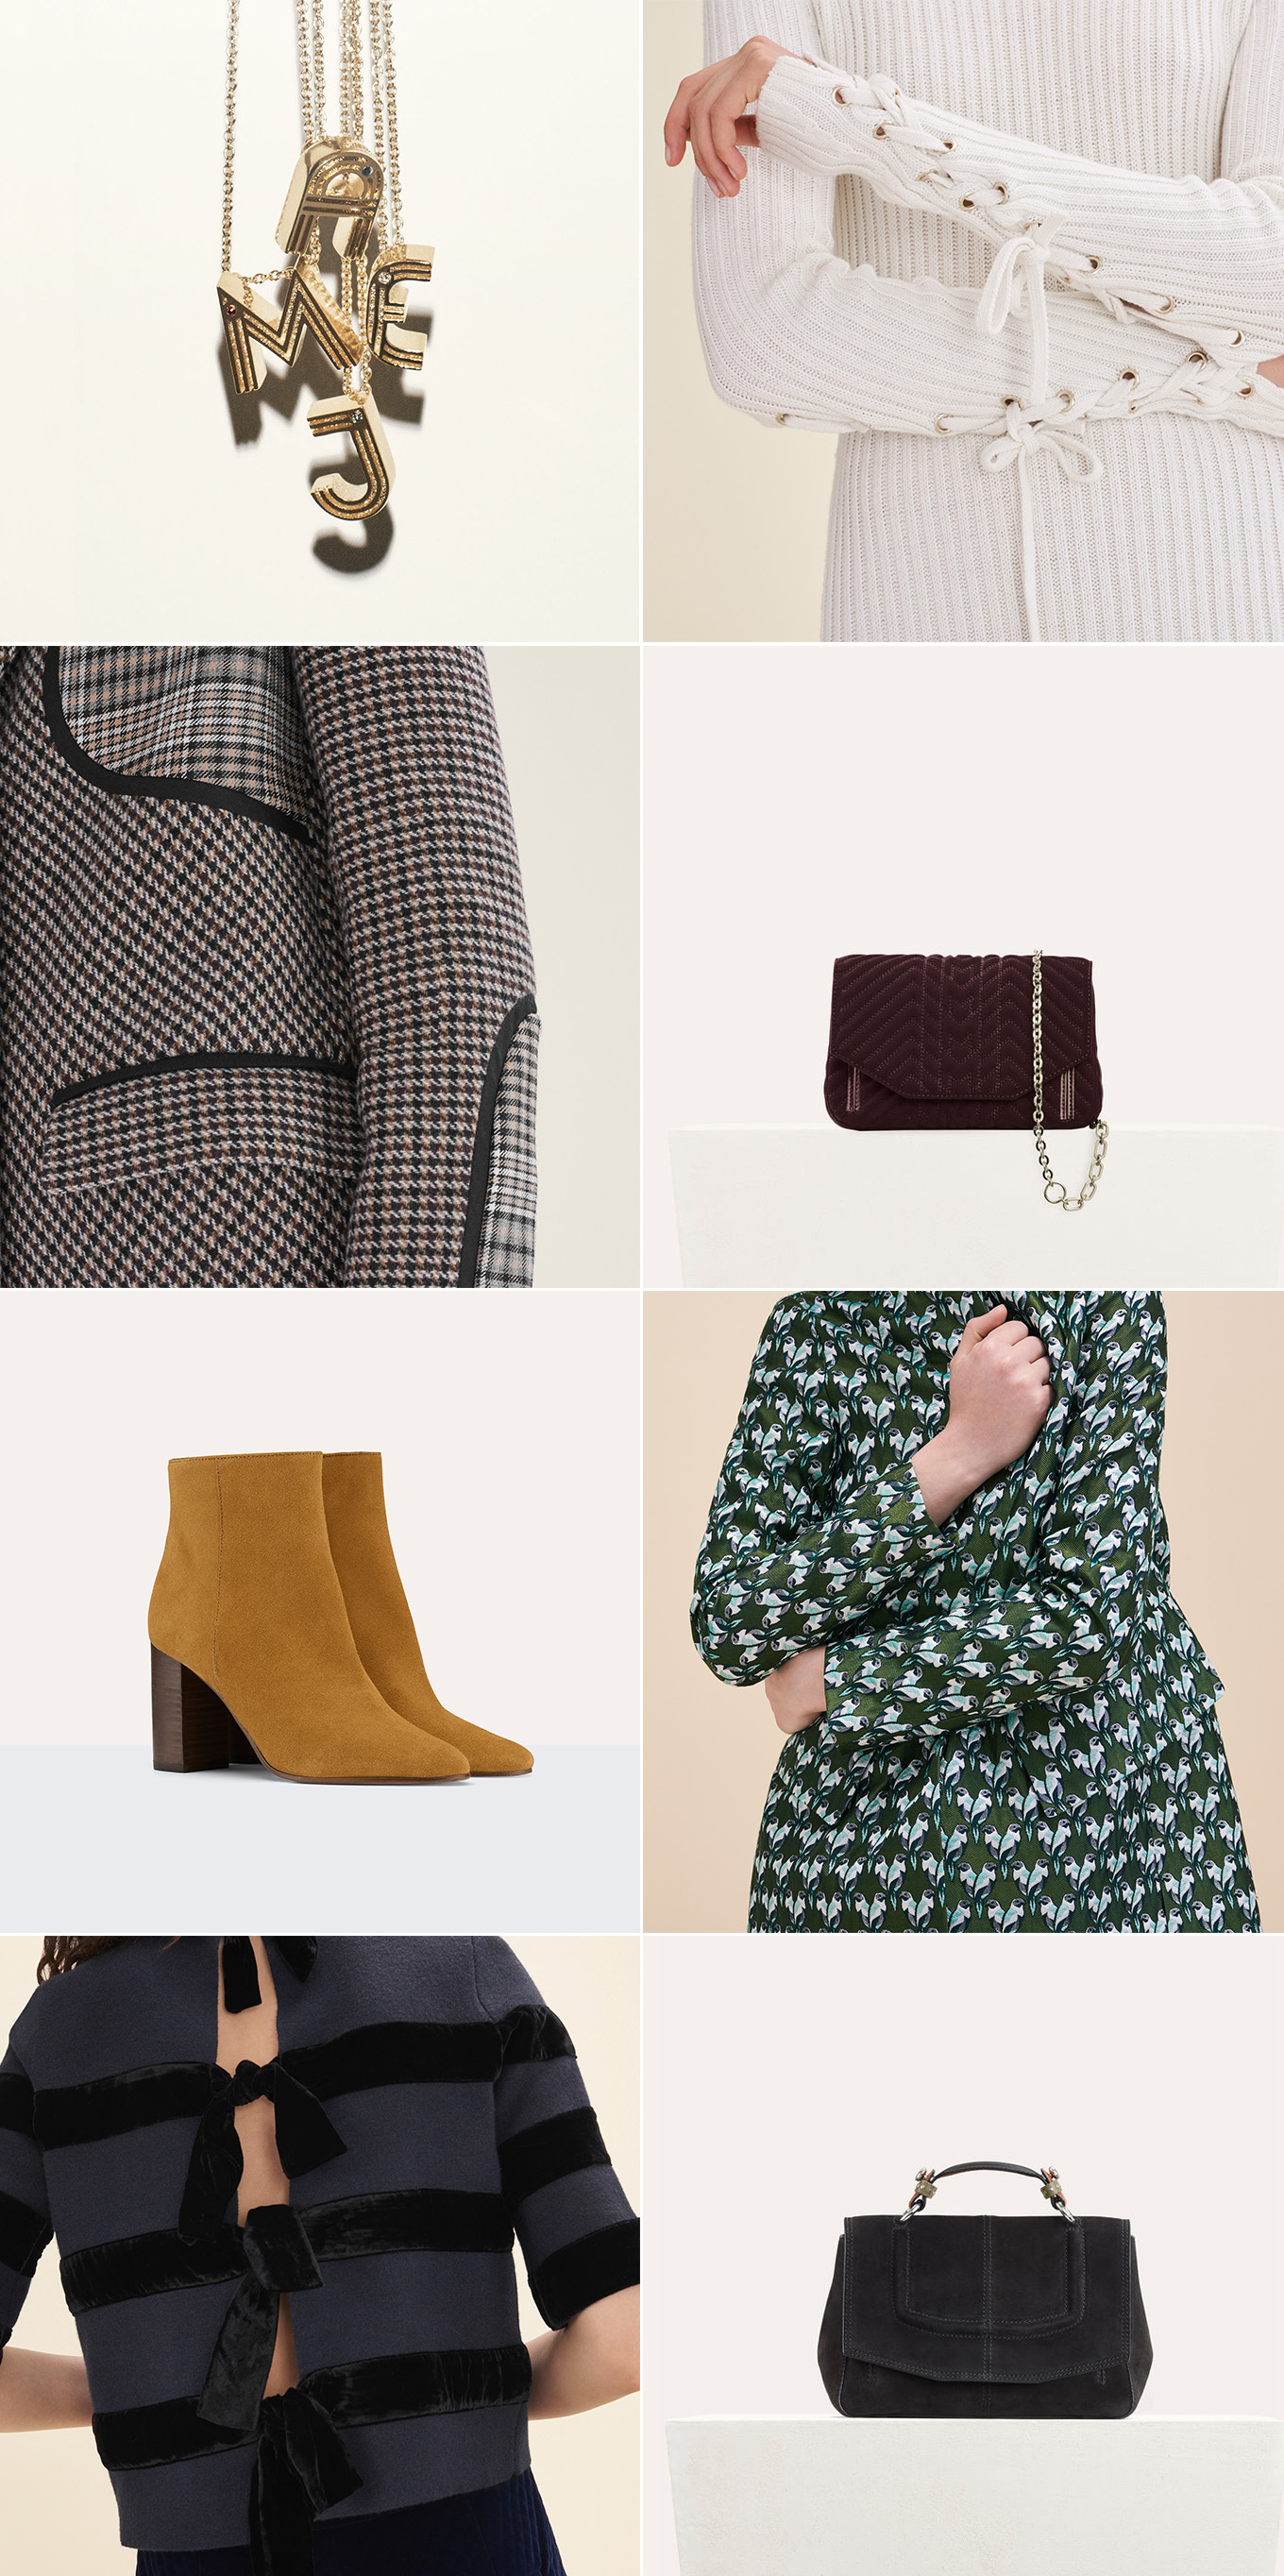 Ridgely Brode takes a look at what's new at Maje after spying a great plaid dress and shares her finds on her blog, Ridgely's Radar.